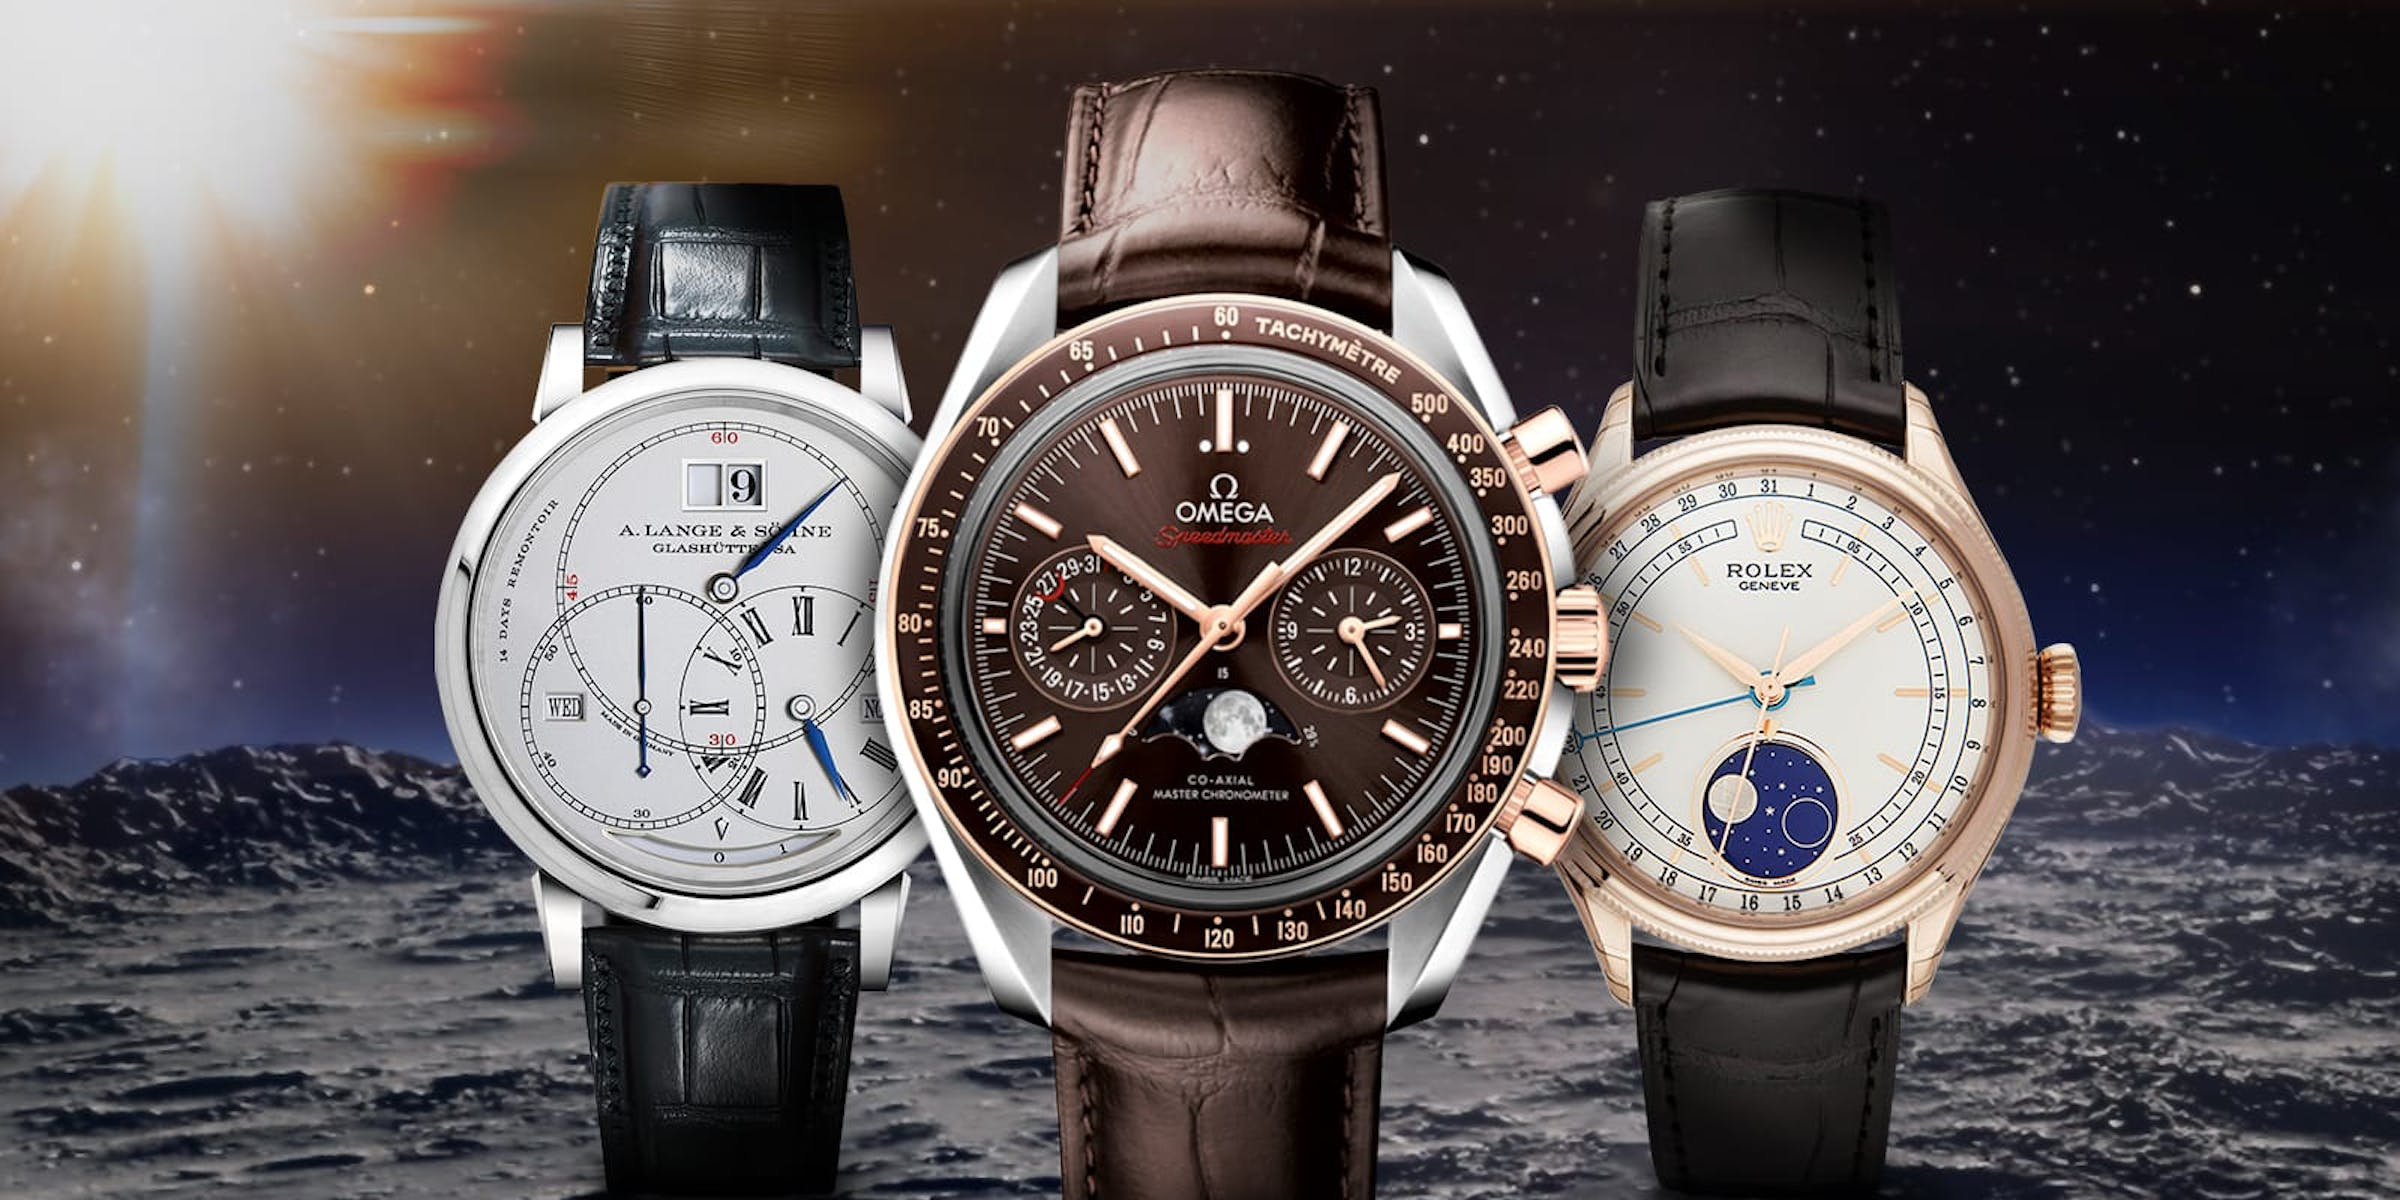 Sun, Moon, and Stars – Watches with Moon Phase Displays